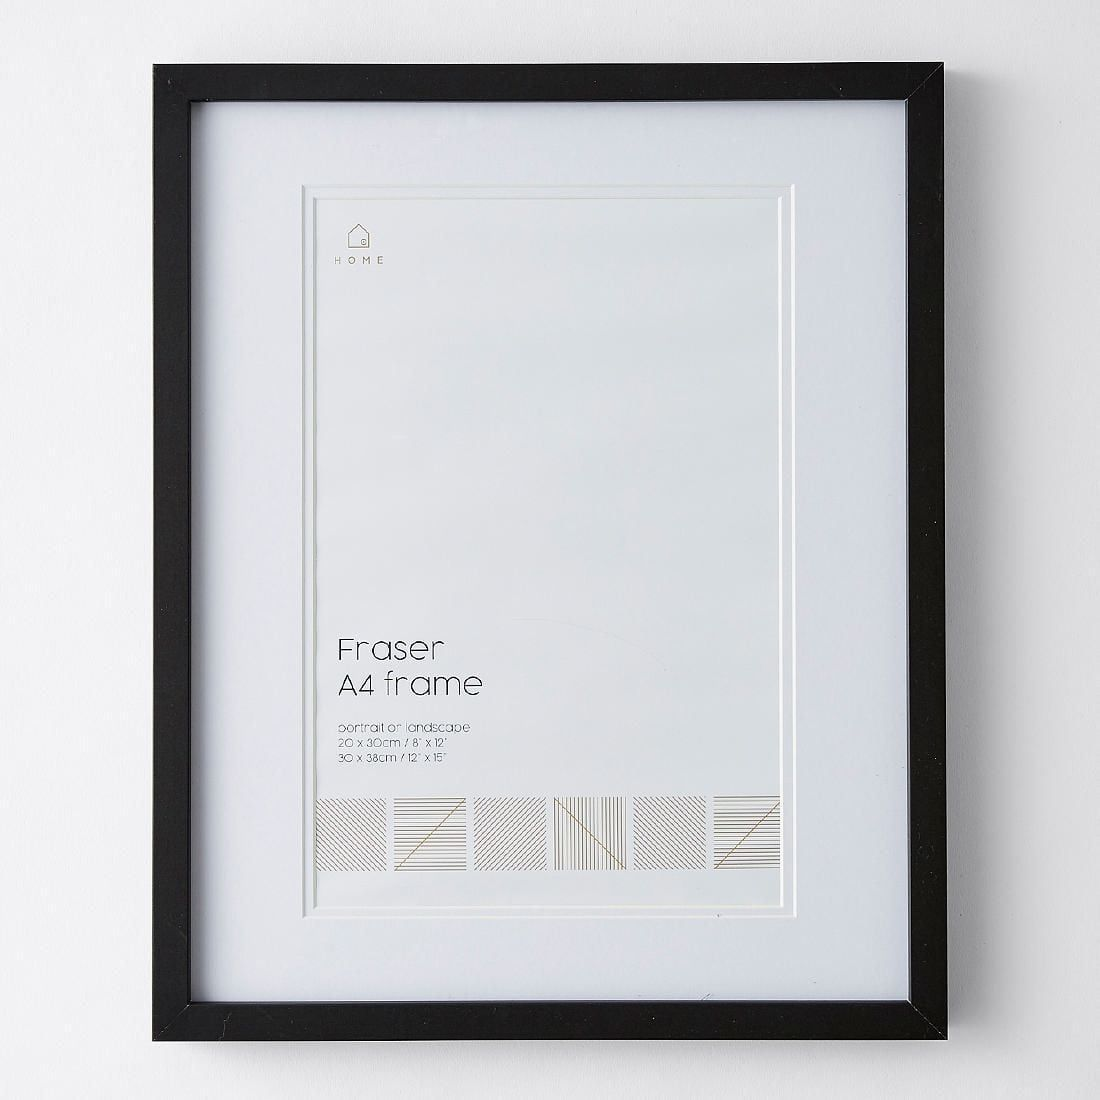 Fraser A4 Document Frame White Target Australia In 2020 Document Frame Frame White Frame